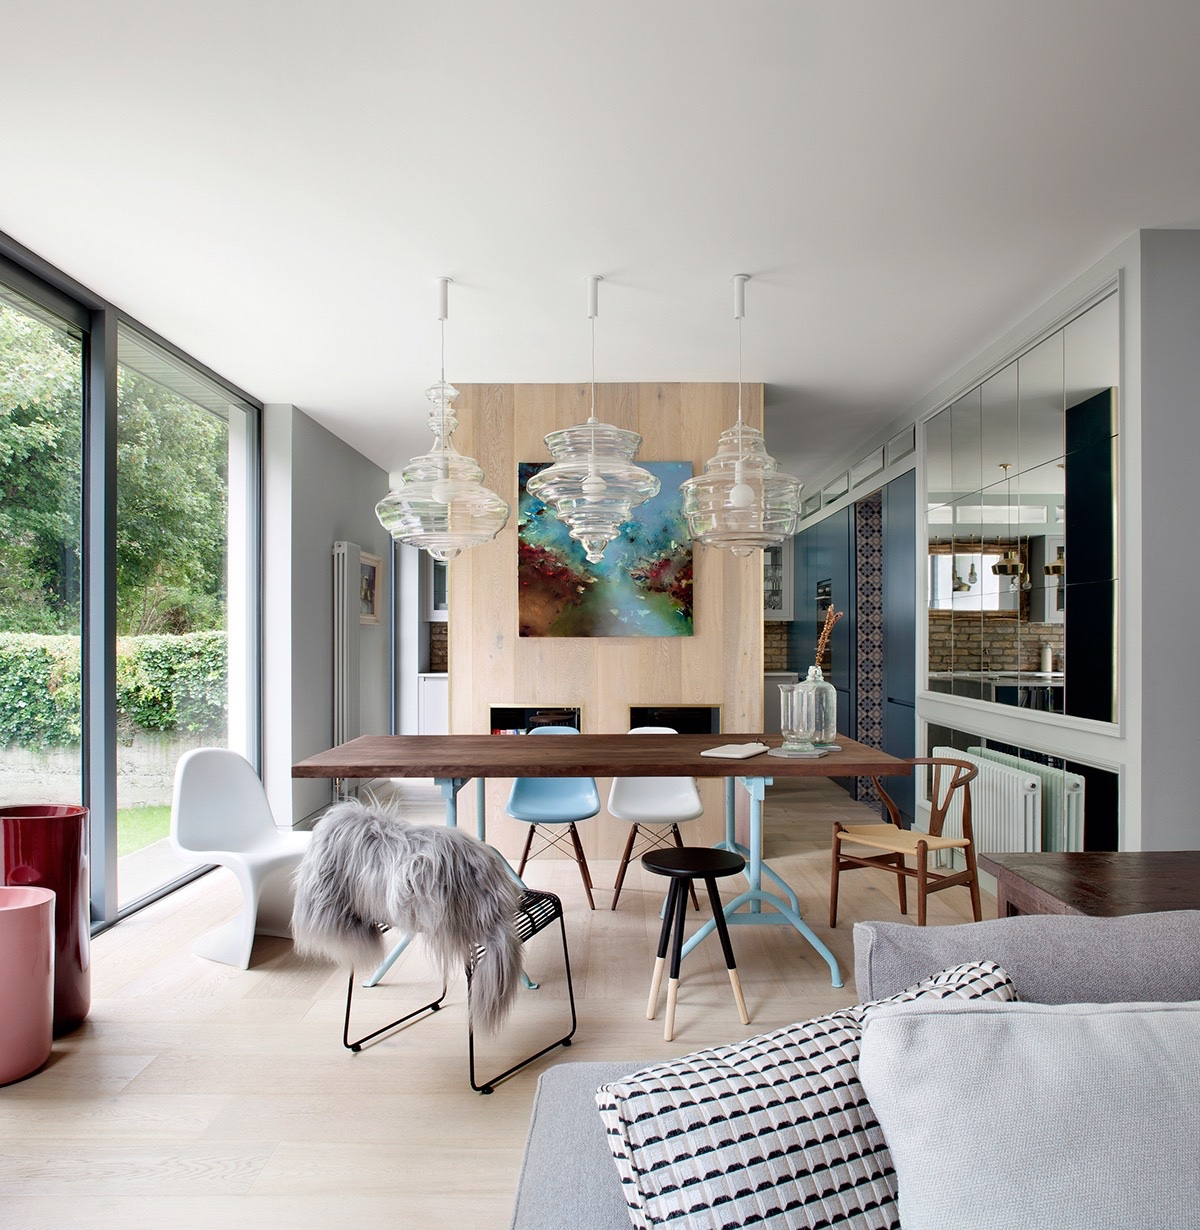 60 Modern Dining Room Design Ideas: Modern Dining Room Designs Combined With Scandinavian